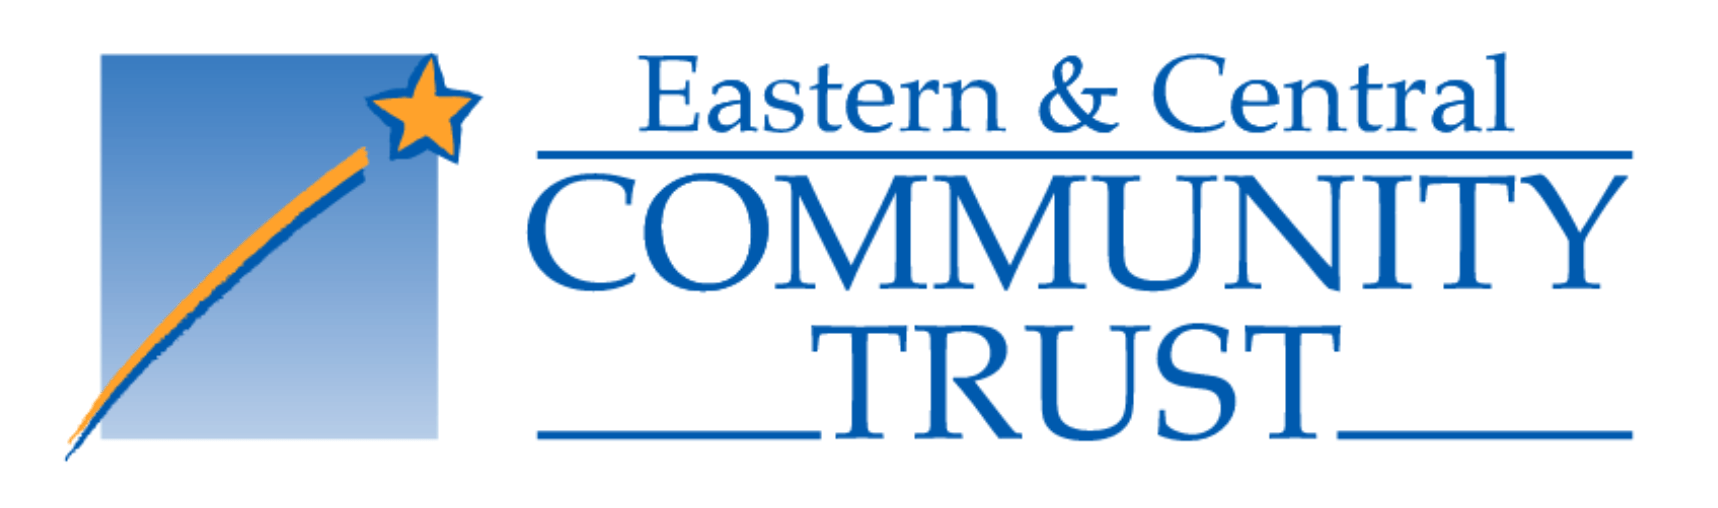 Eastern-&-Central-Community-Trust-logo